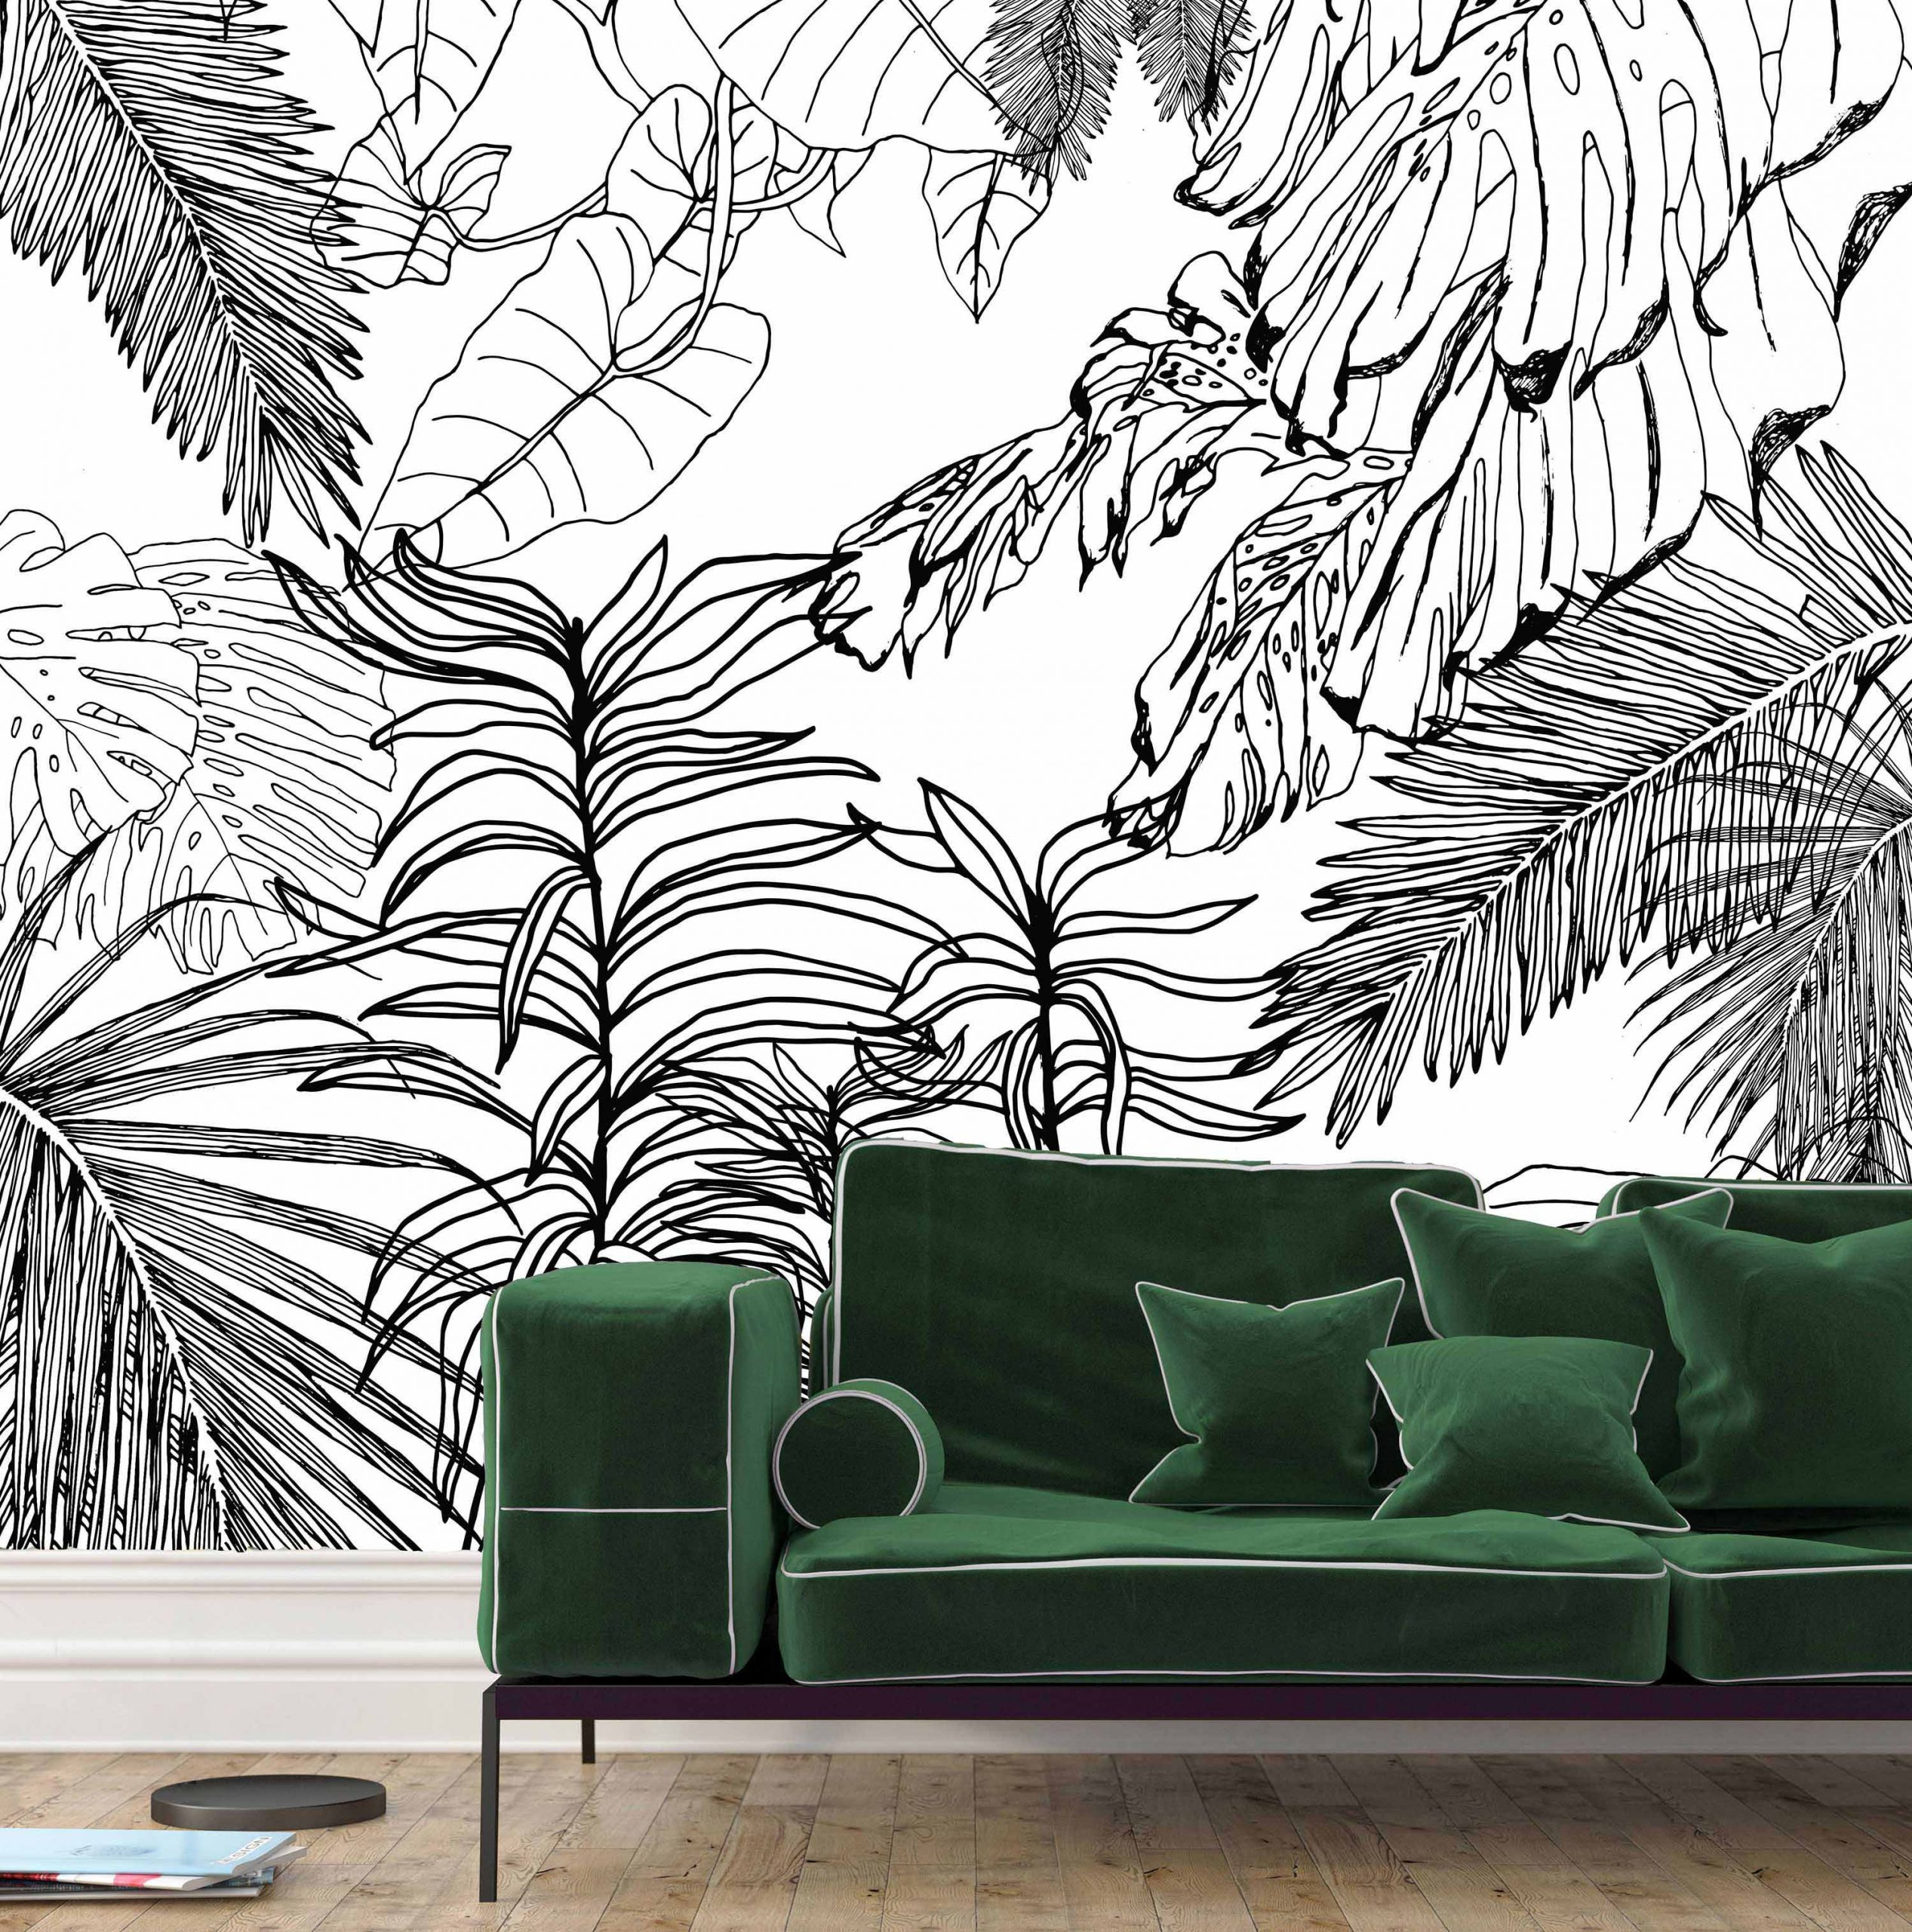 Palm Simplicity flock wall mural